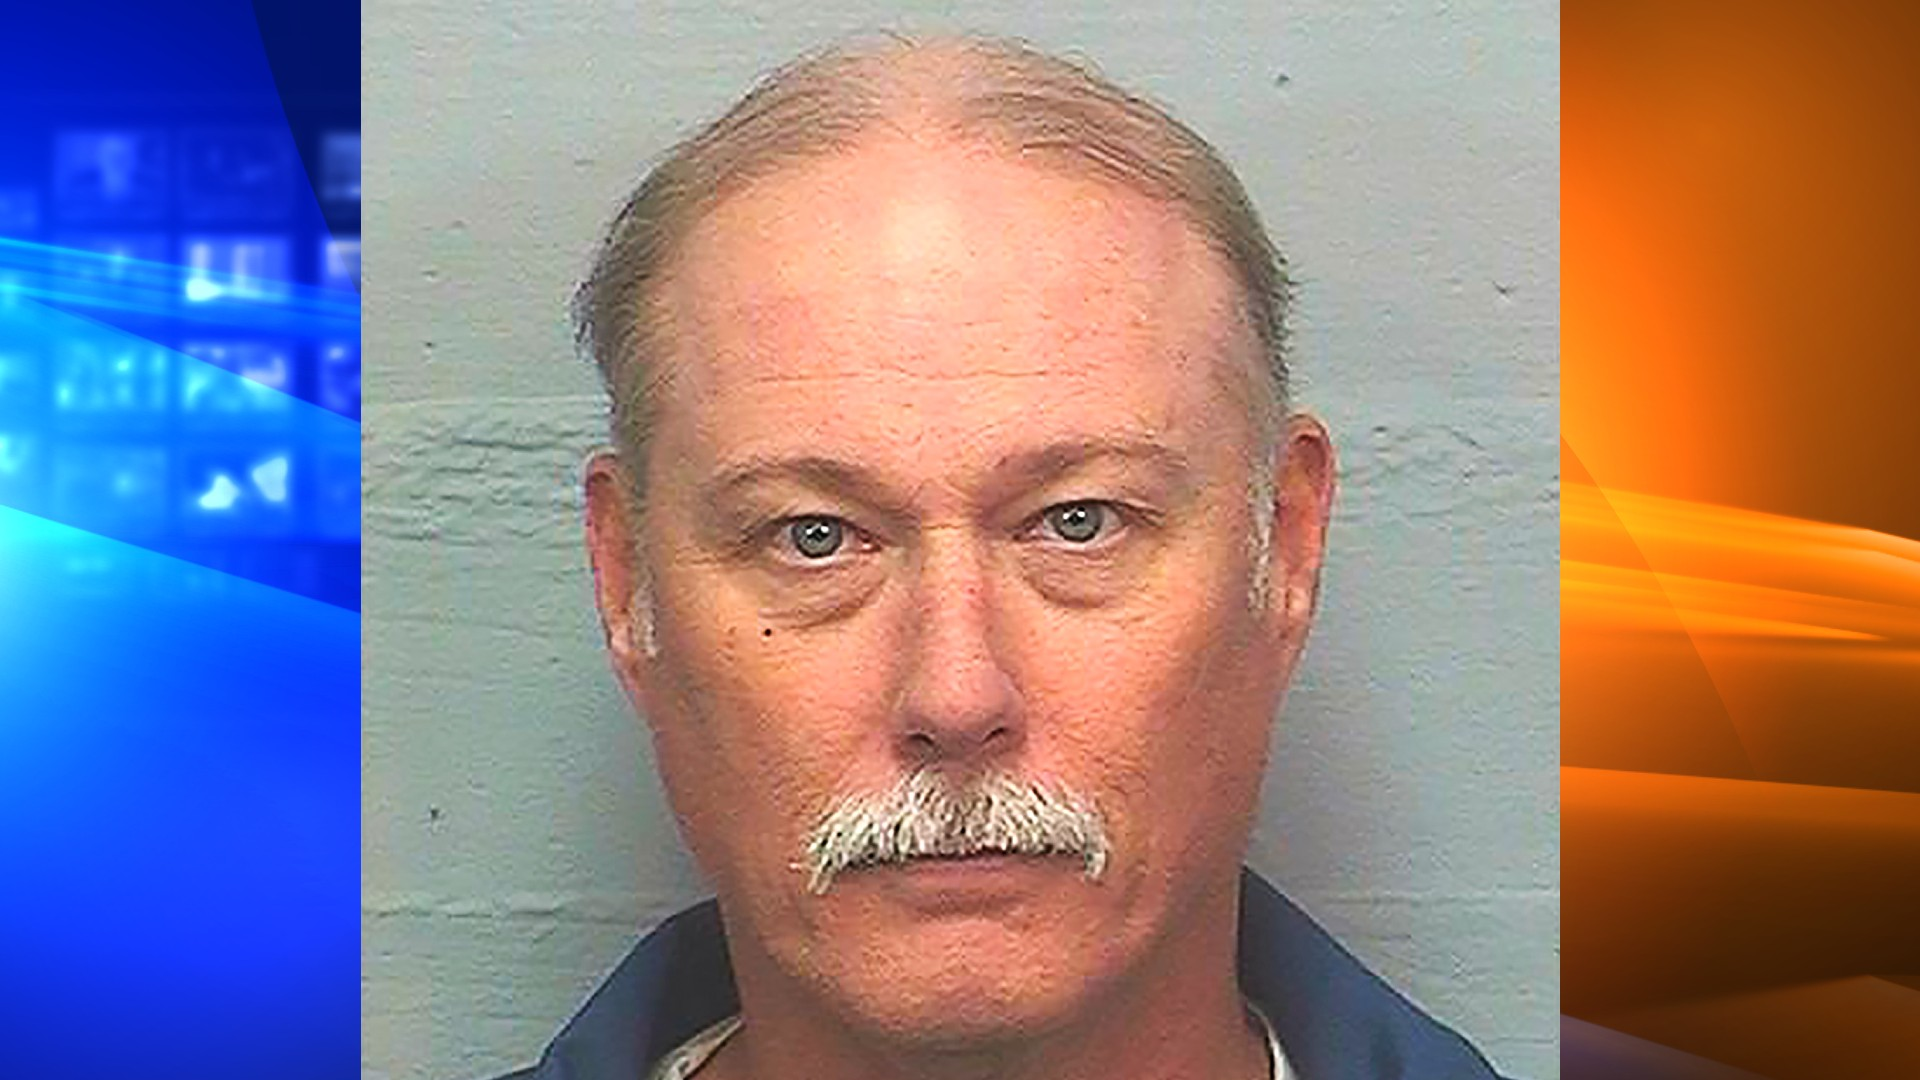 This Jan. 18, 2017, photo provided by the California Department of Corrections and Rehabilitation shows convicted murderer David Weidert. (California Department of Corrections and Rehabilitation via AP)